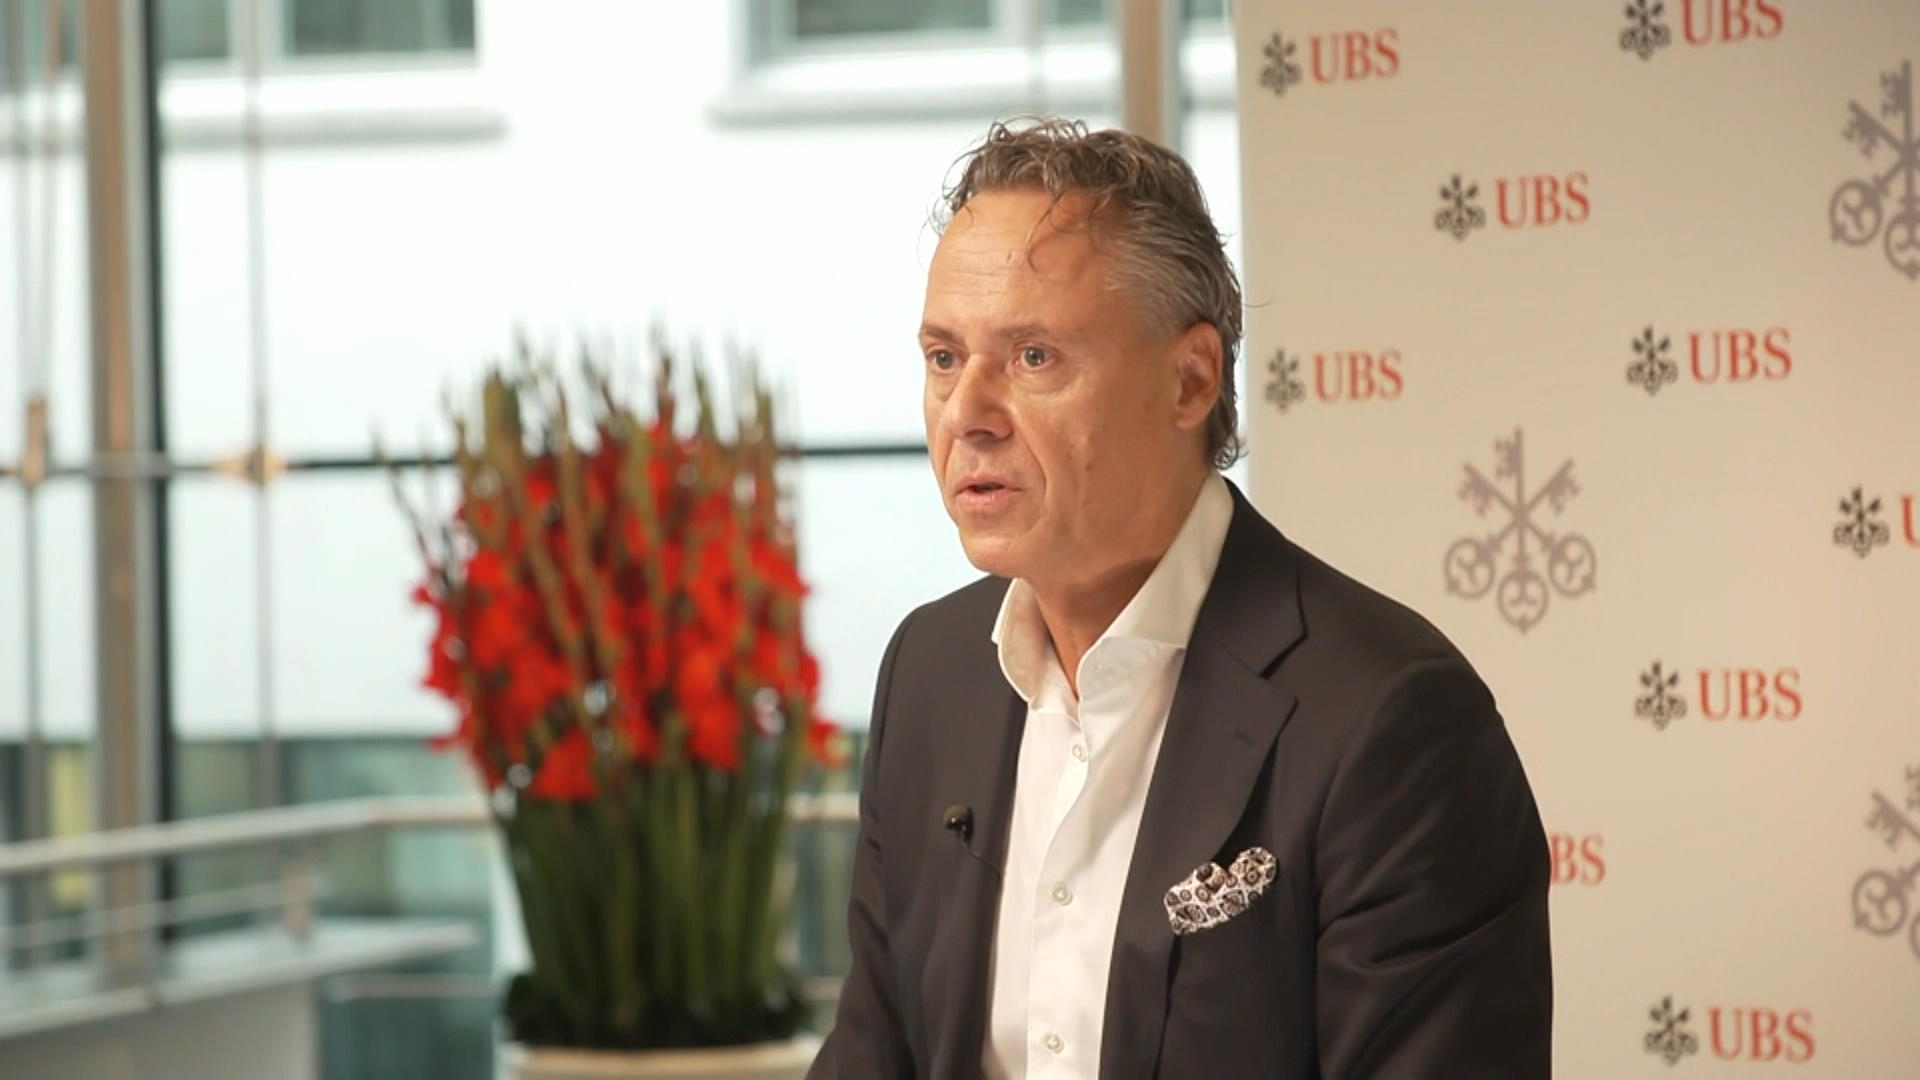 Crypto is an 'untested asset category,' says UBS CEO Ralph Hamers